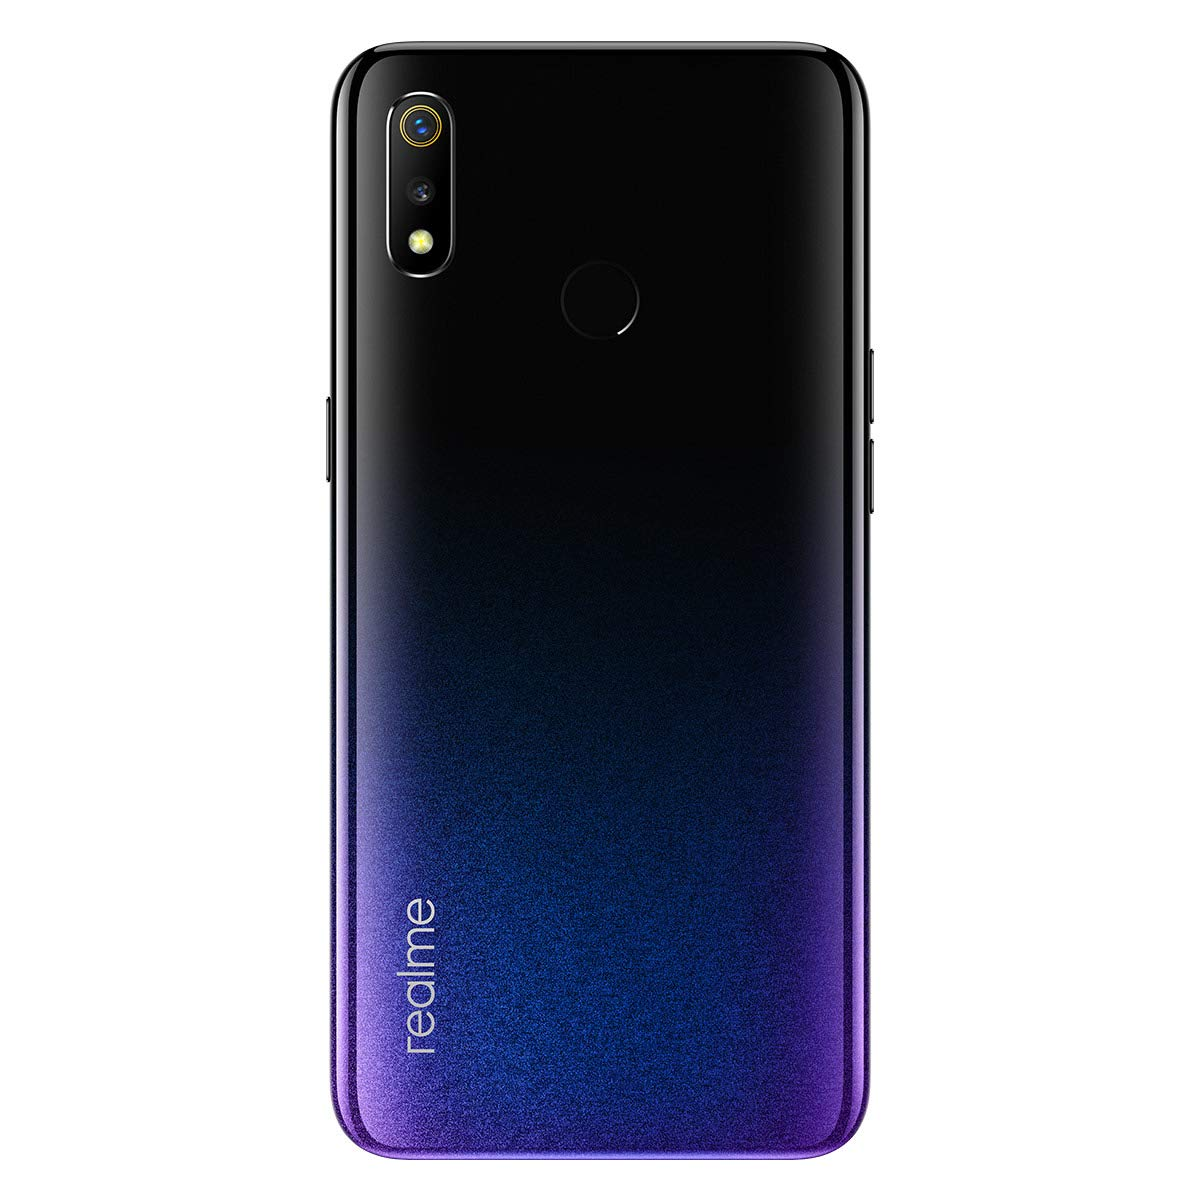 Realme 3 (Dynamic Black, 3GB RAM, 64GB Storage)